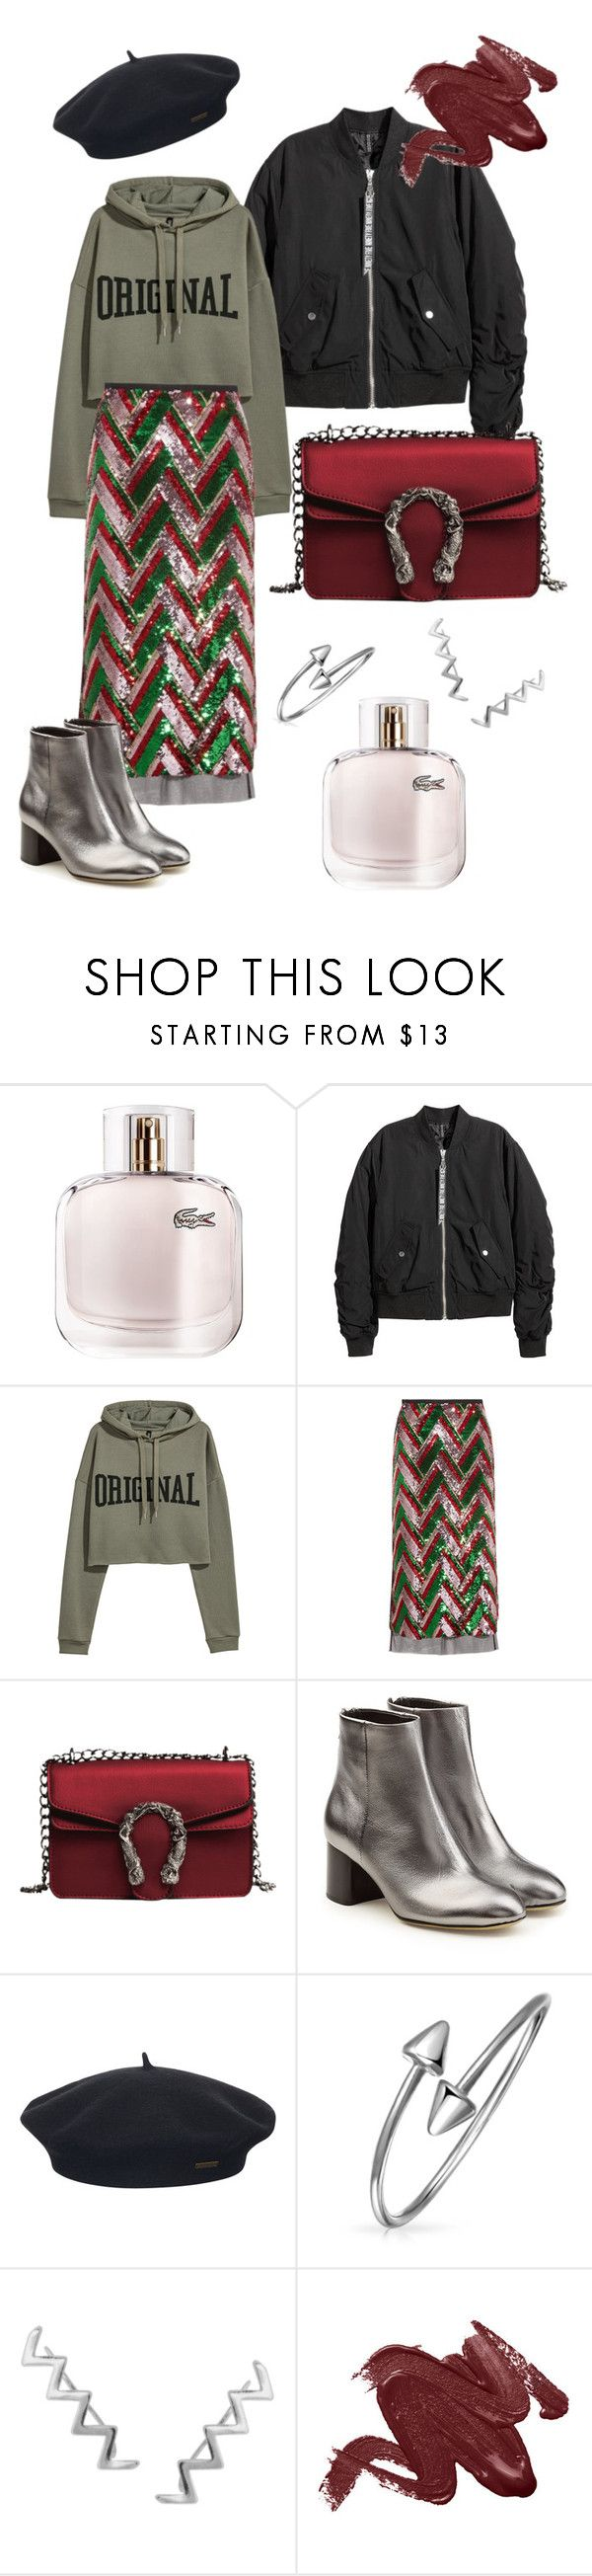 """Hoodie Accent"" by olga-litvin ❤ liked on Polyvore featuring Lacoste, Gucci, rag & bone, Element, Bling Jewelry and Humble Chic"